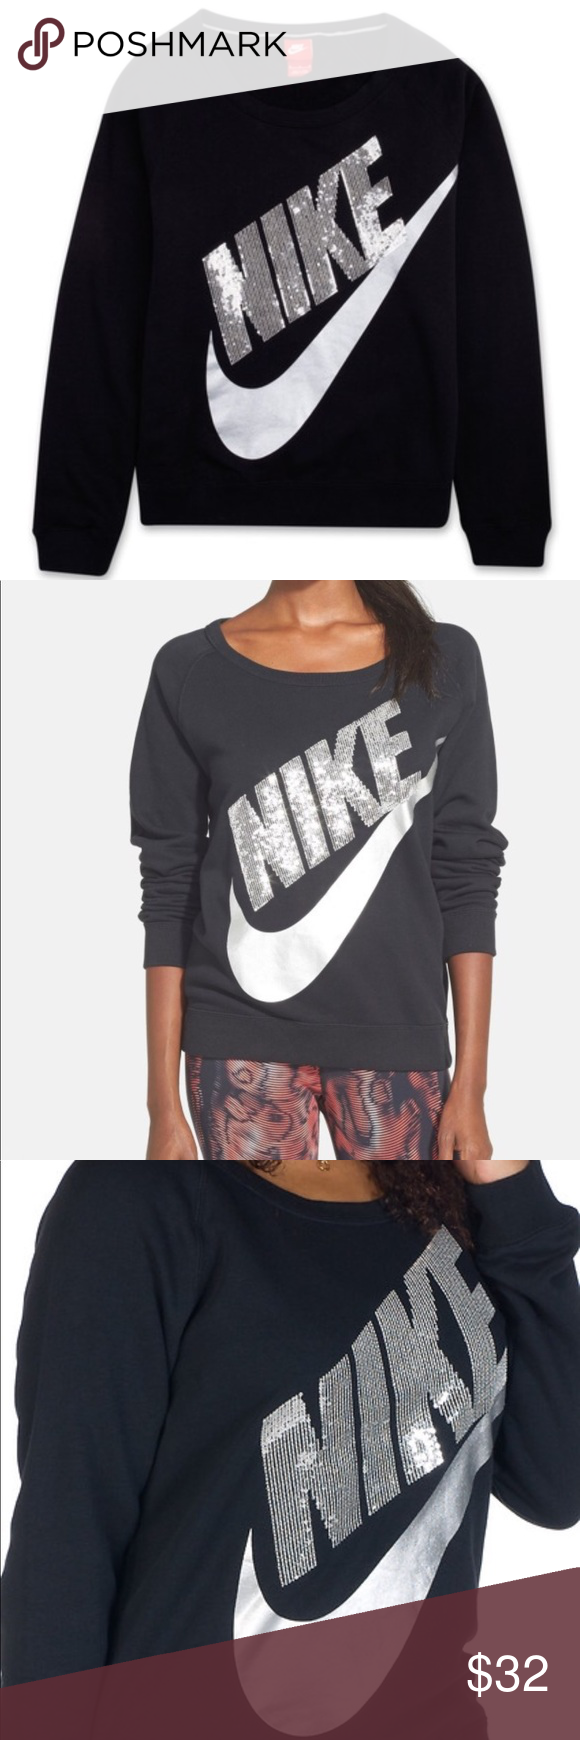 94b500473fde Nike Bling Sweatshirt Swoosh is a metallic silver (no chipping or cracking)  and the lettering is made up entirely of sequins (none missing).